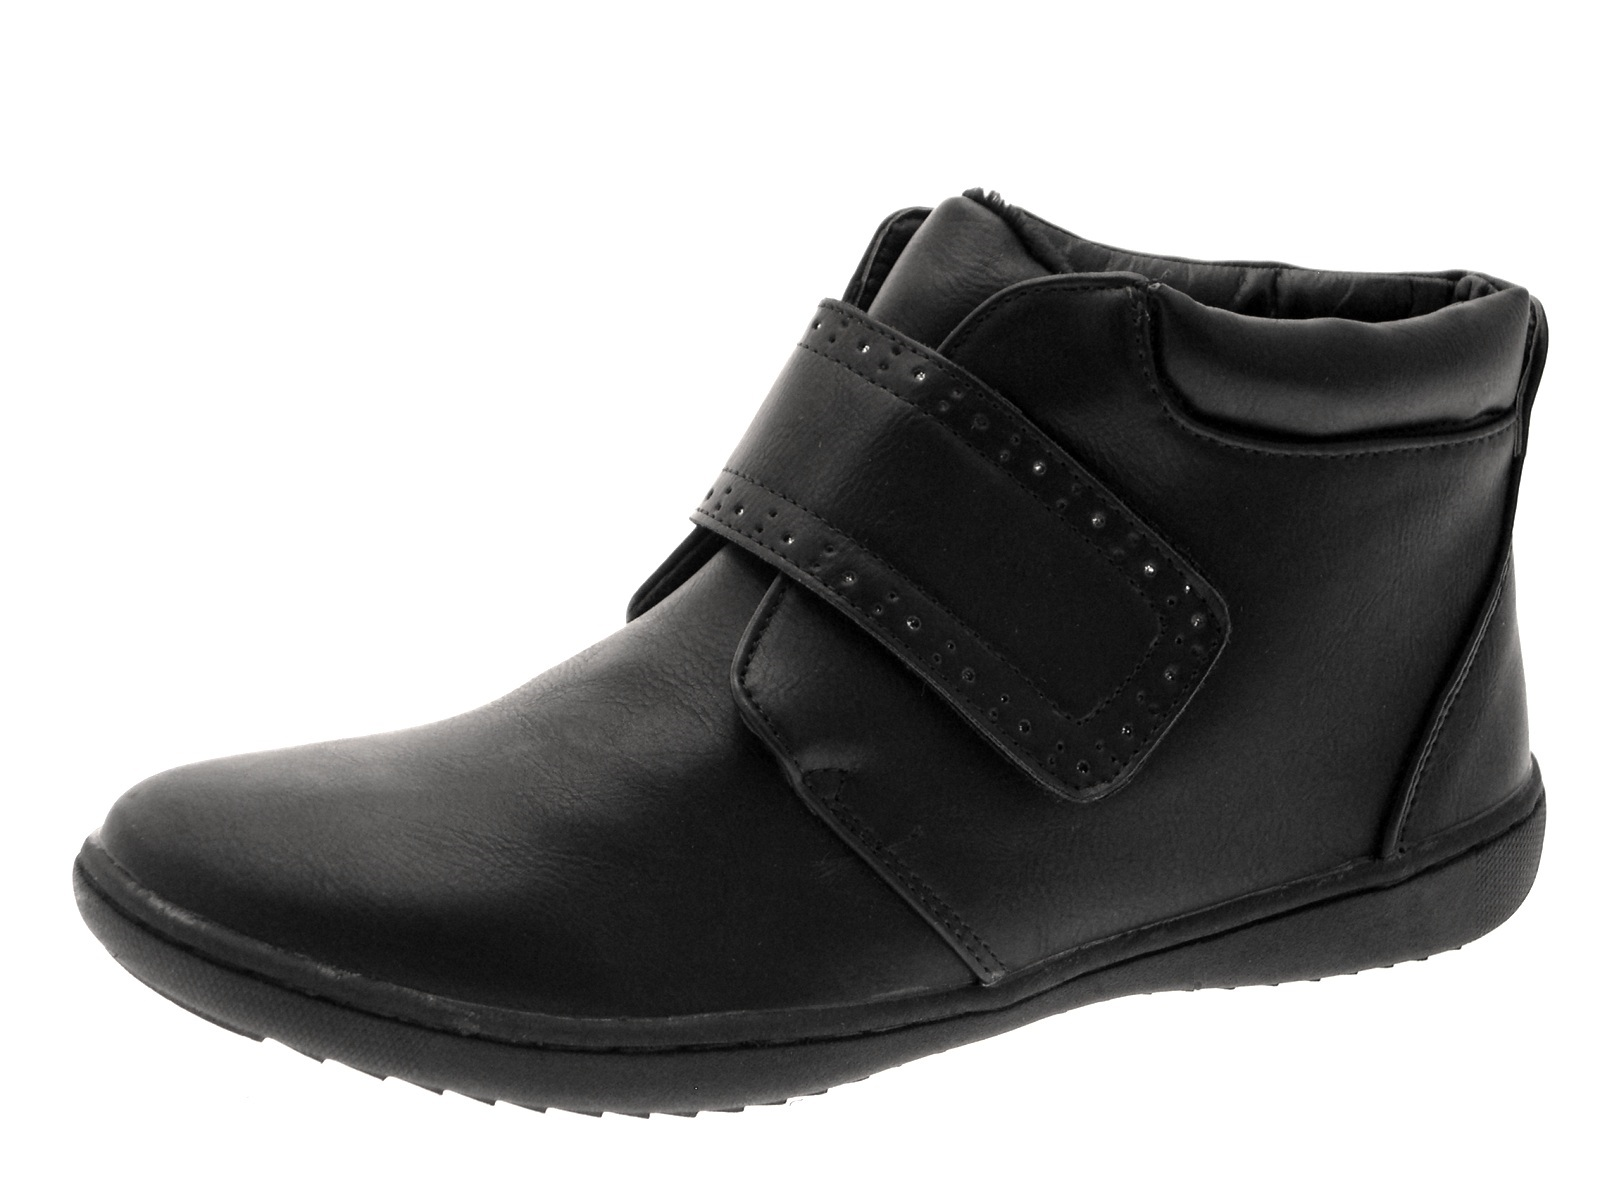 Womens Comfortable Flat Chelsea Gusset Faux Leather Ankle Boots ...